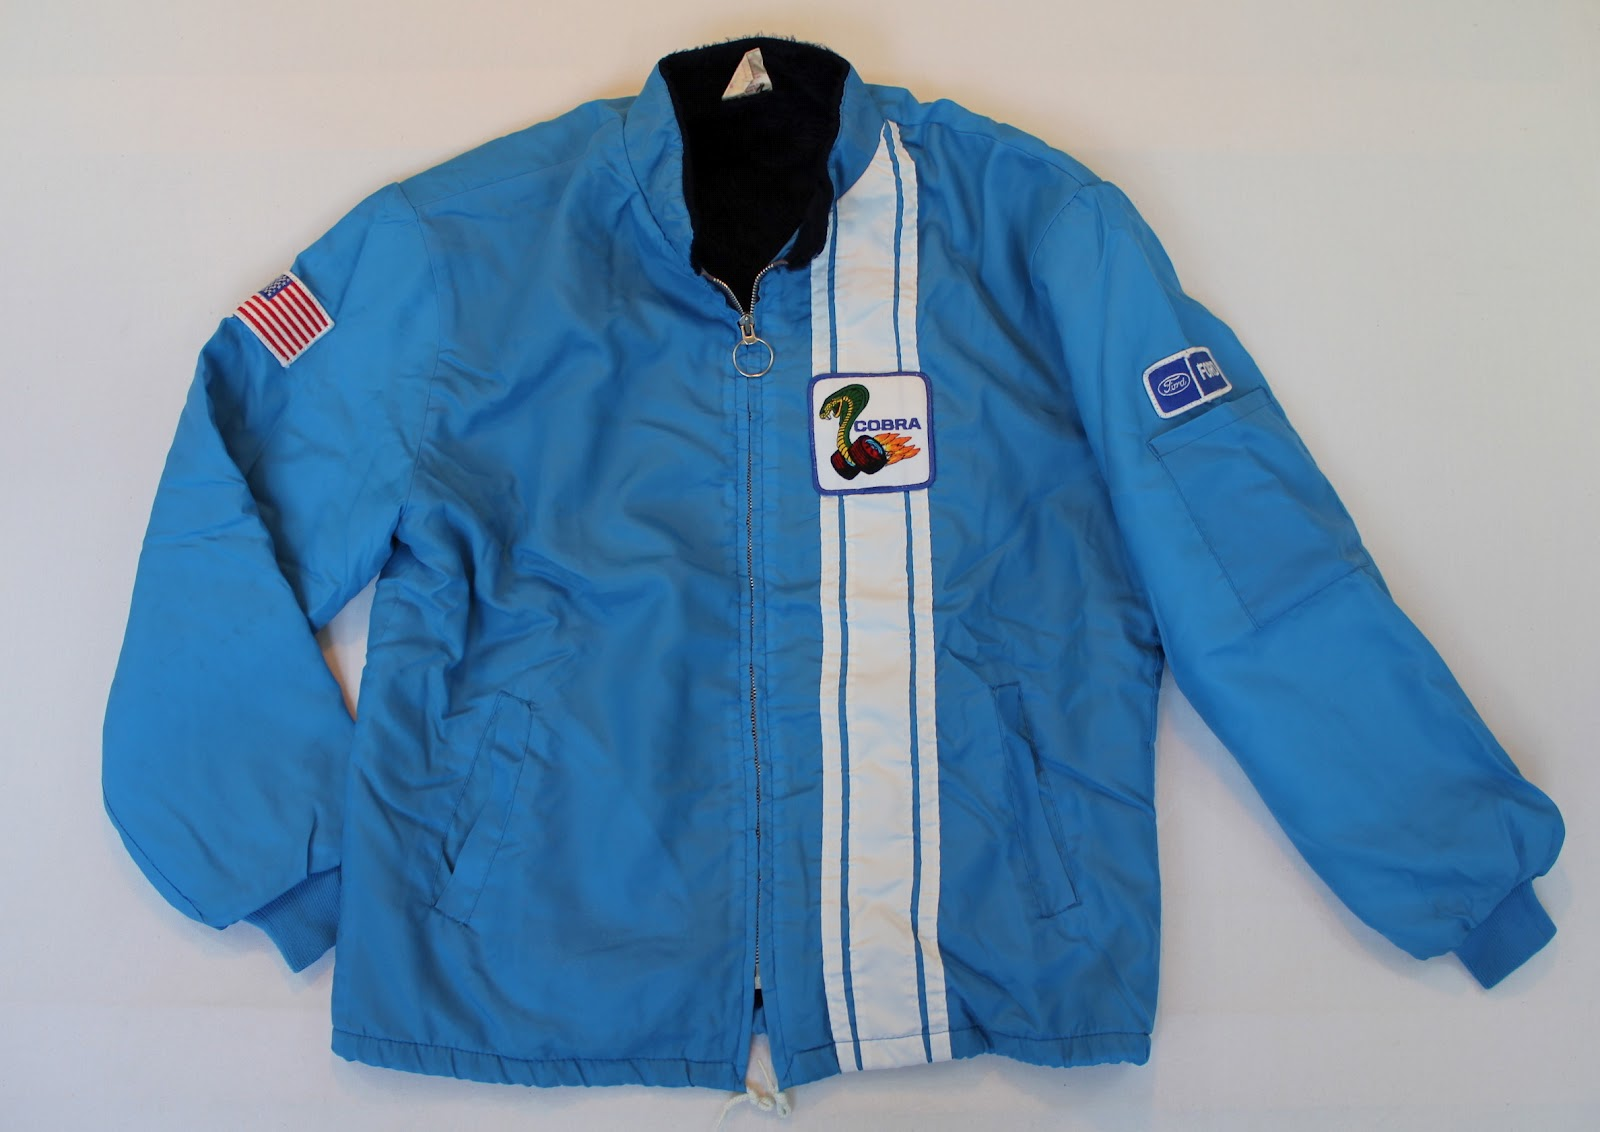 Vintage Workwear Adam Yauch Carol Shelby Two Artists Whose Body Of Work Will Stand The Test Of Time Thanks For The Memories